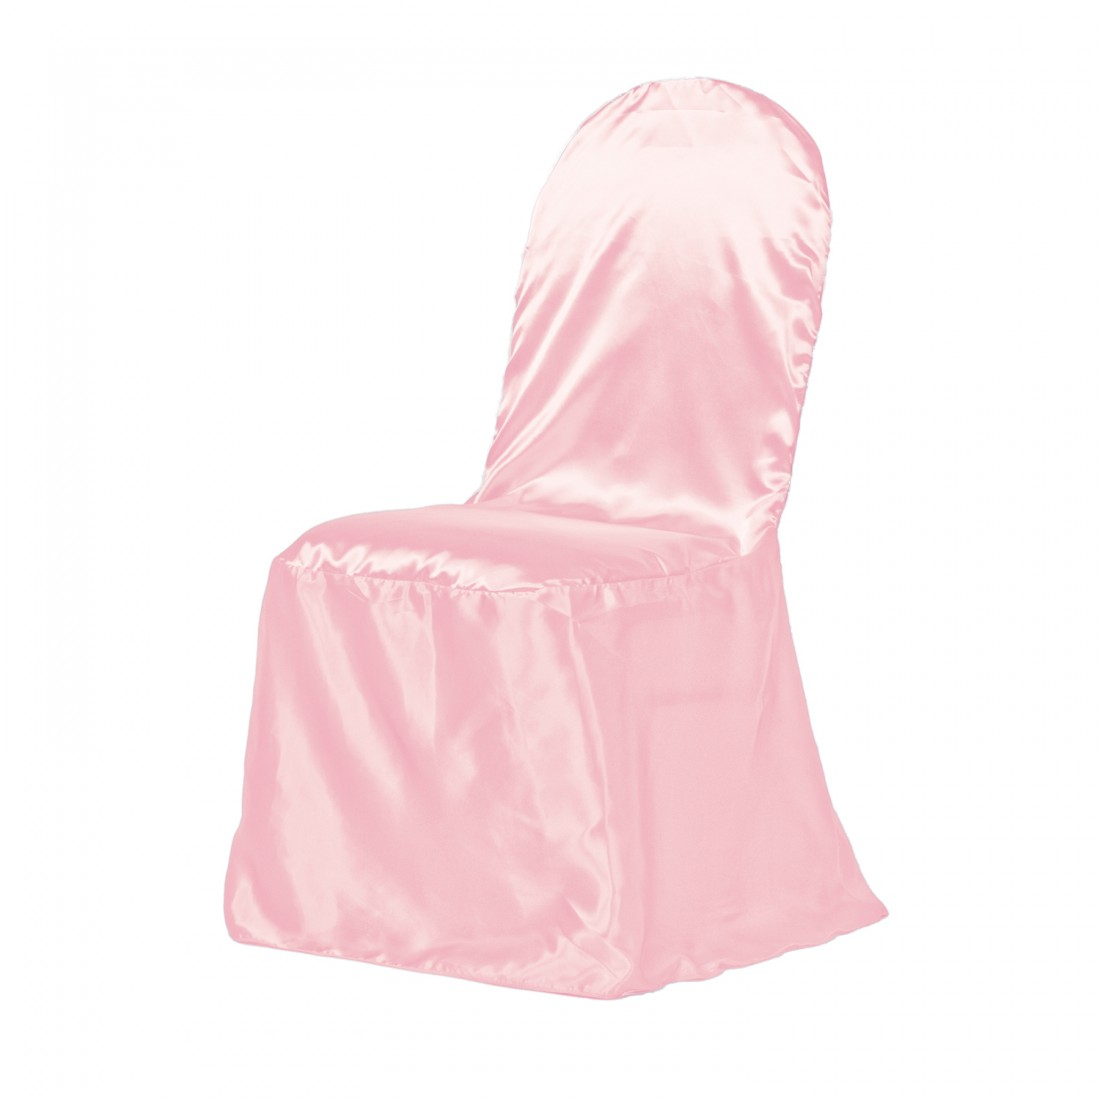 satin-banquet-chair-cover-pink_1